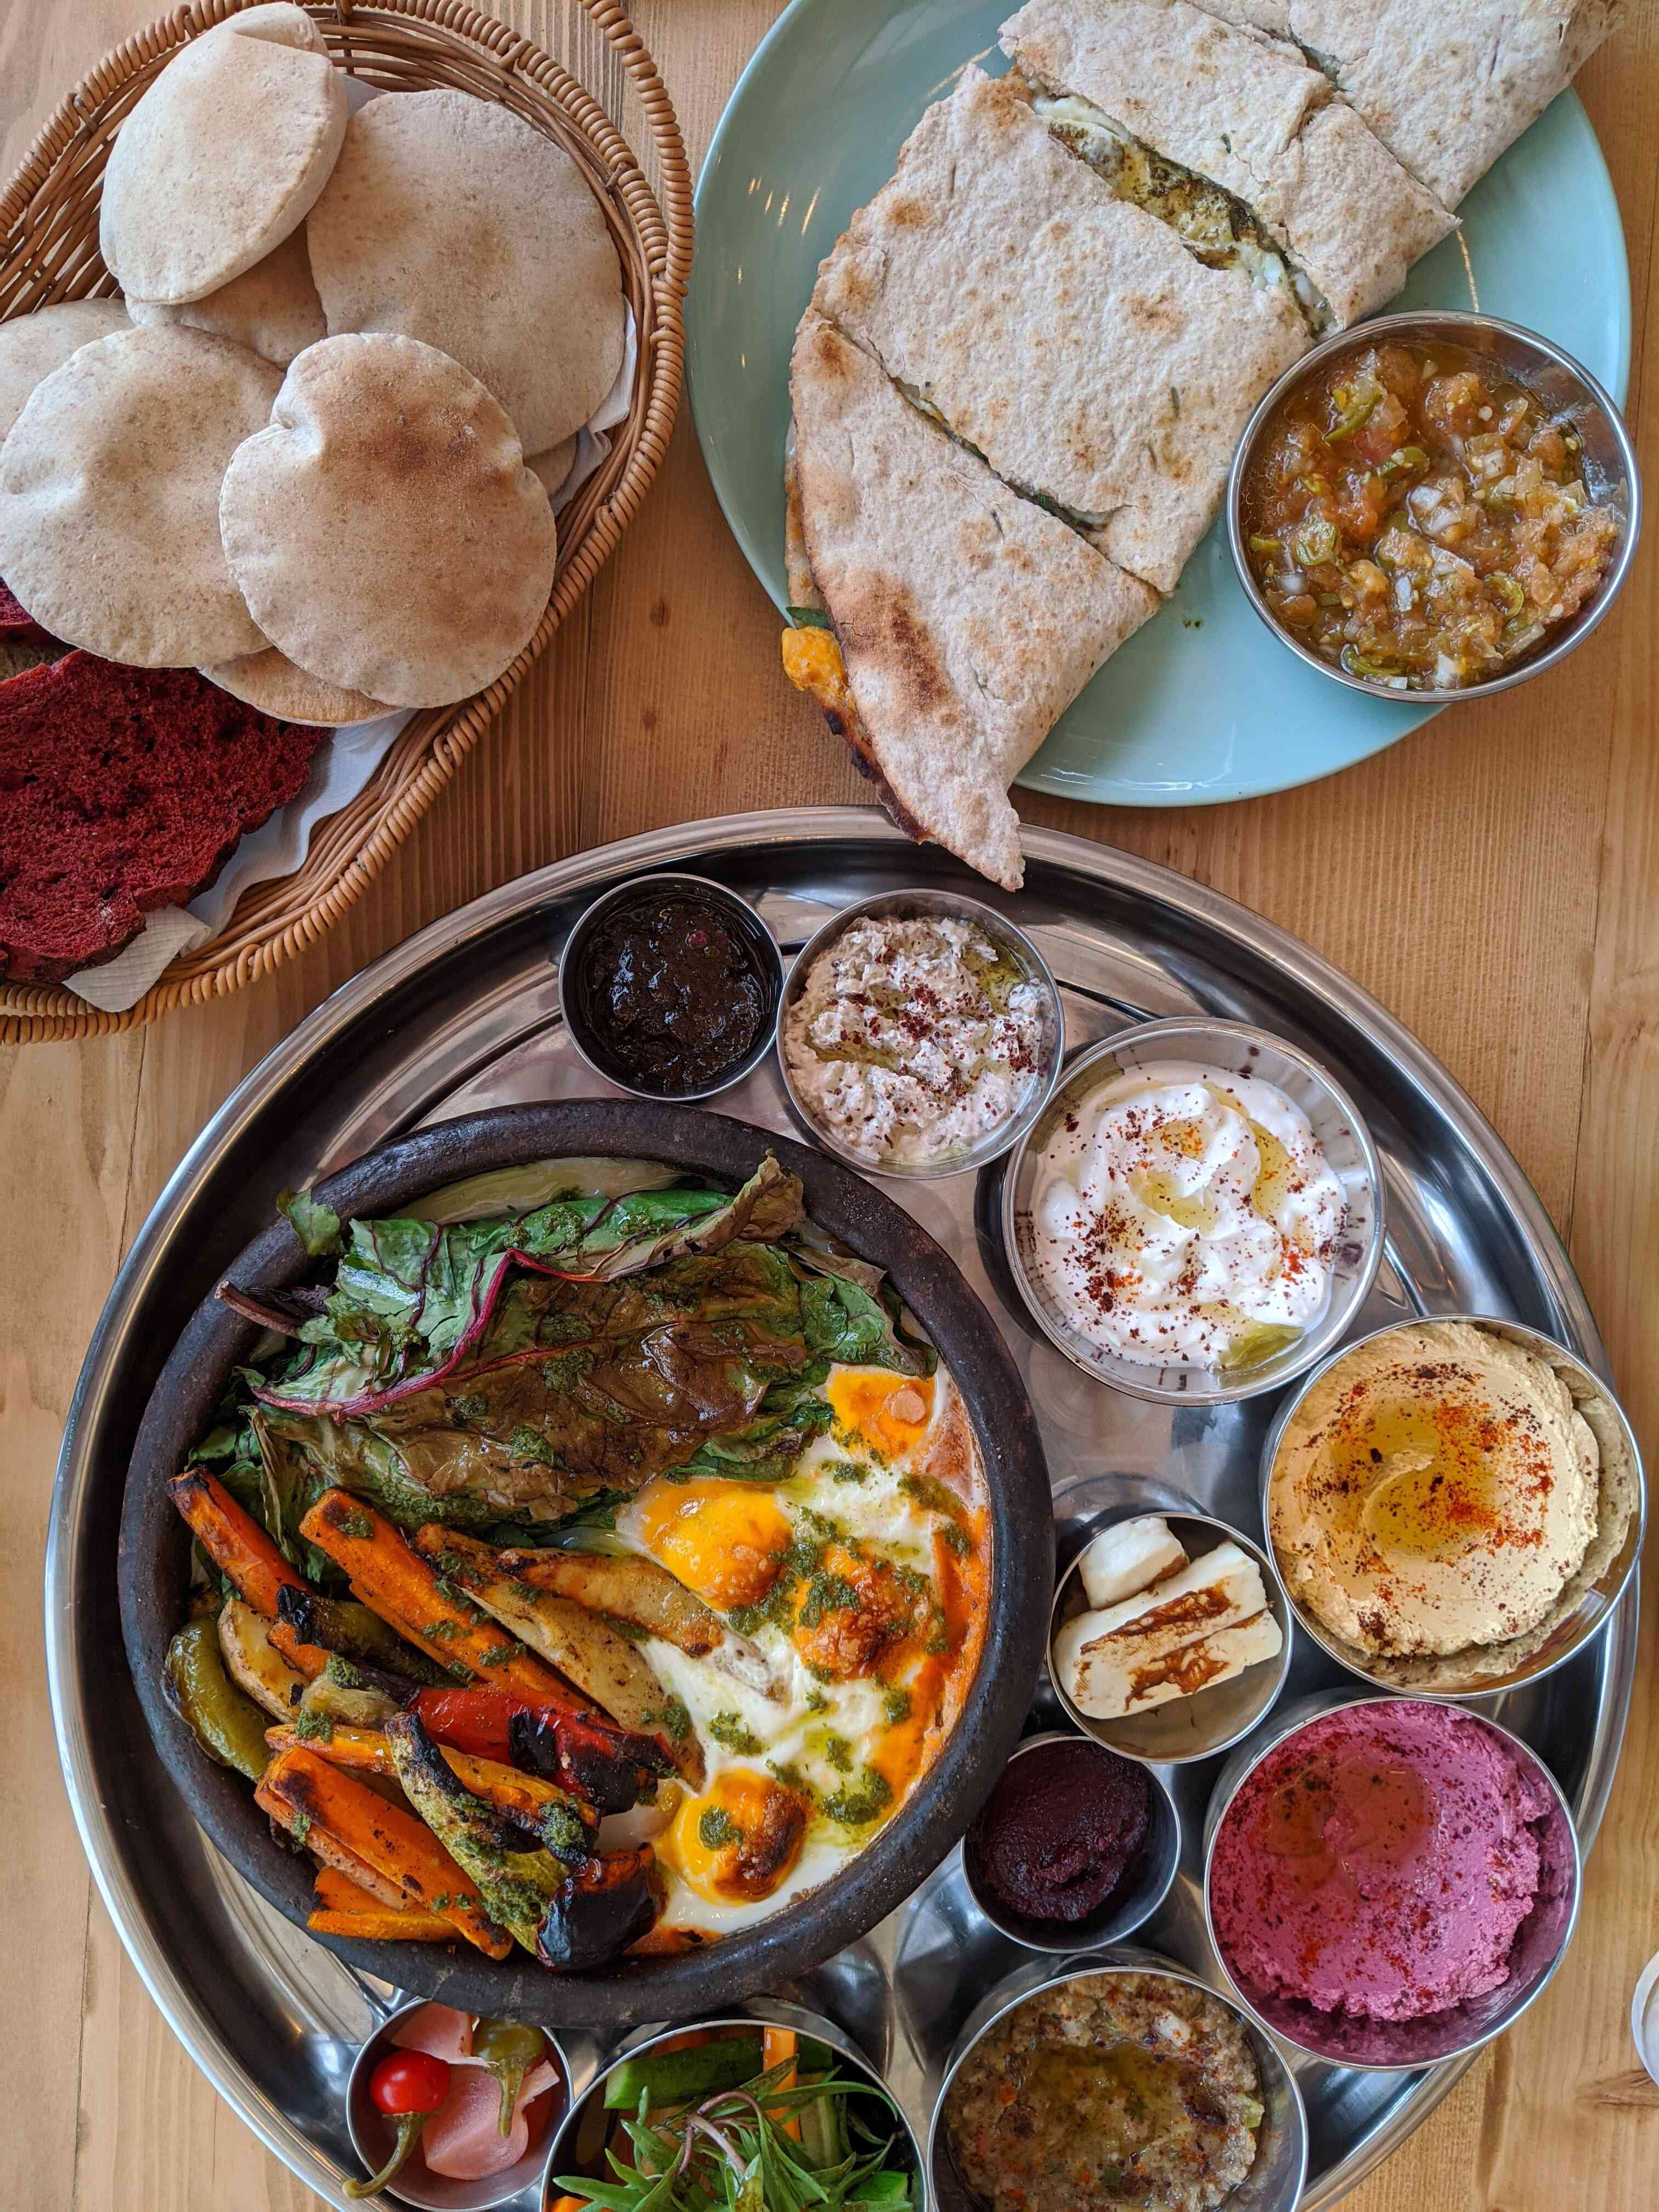 table of food with a basket of white flat breads; a folded,stuffed pita; and a metal tray with a bowl of vegetables and smaller bowls of different hummuses